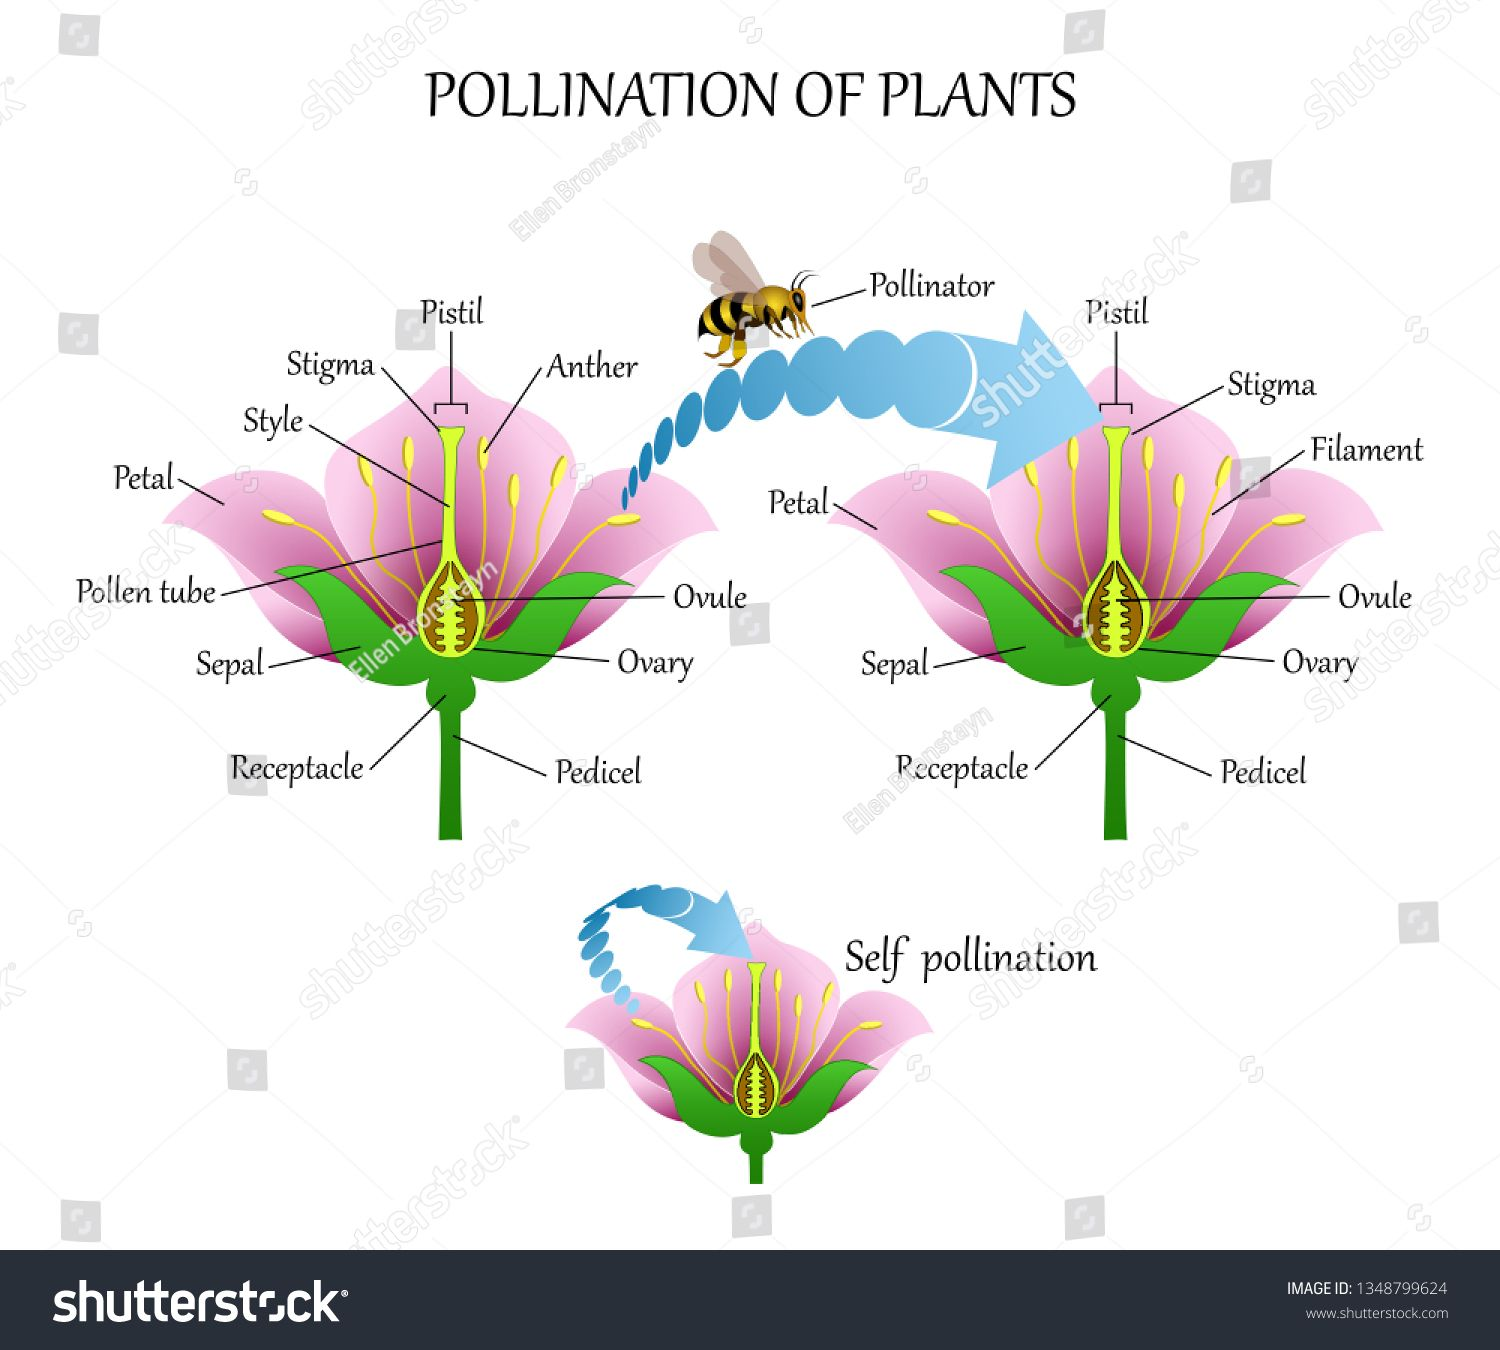 Pollinating Plants With Insects And Self Pollination Flower Anatomy Education Diagram Botanical Biology Banner Vect Flower Anatomy Pollination Plant Insects